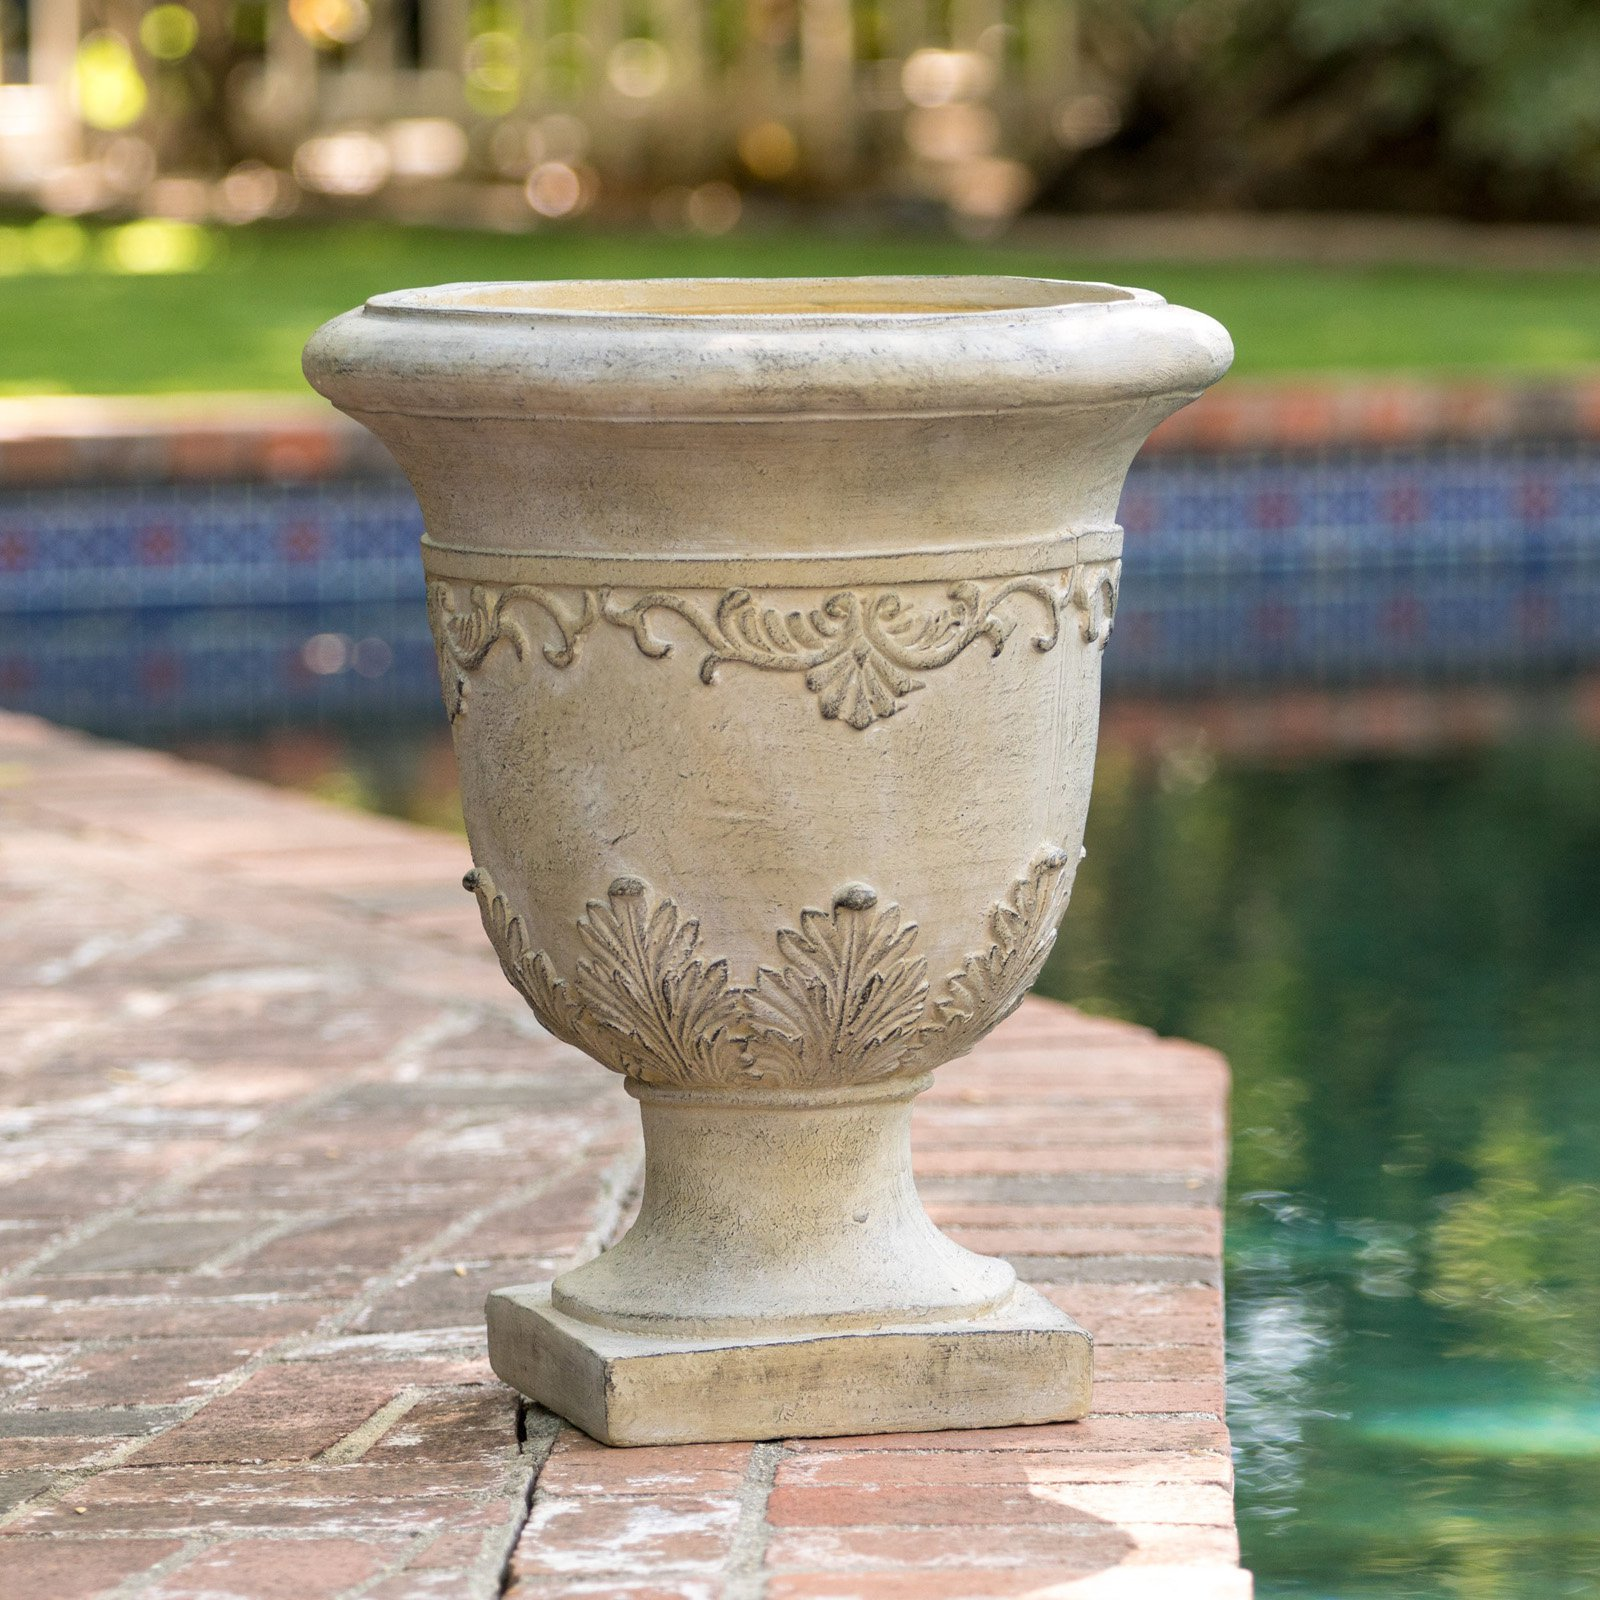 James 20 in. Antique Stone Urn Planter by Best Selling Home Decor Furniture LLC